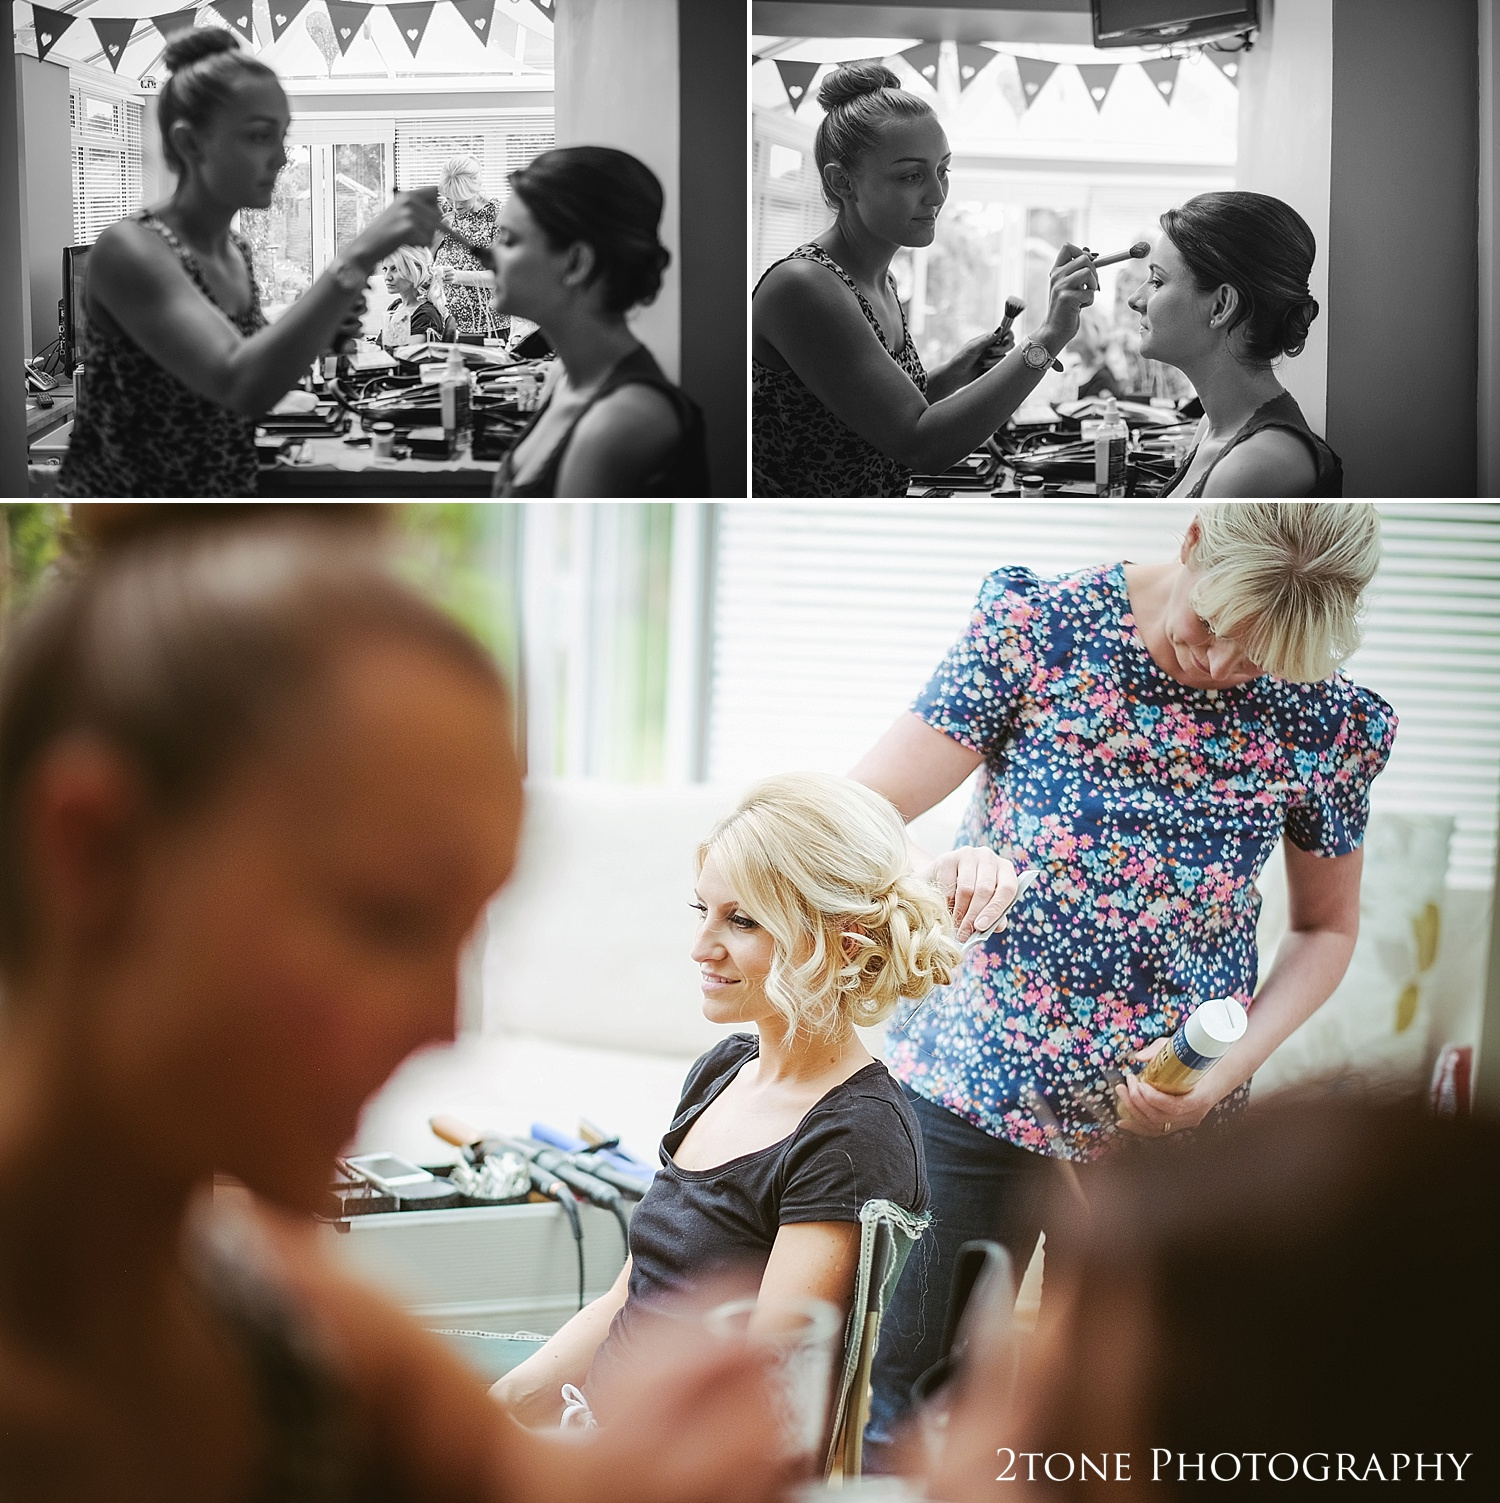 Wedding hair by Lisa Cameron, photographs by wedding photography team 2tone Photography www.2tonephotography.co.uk